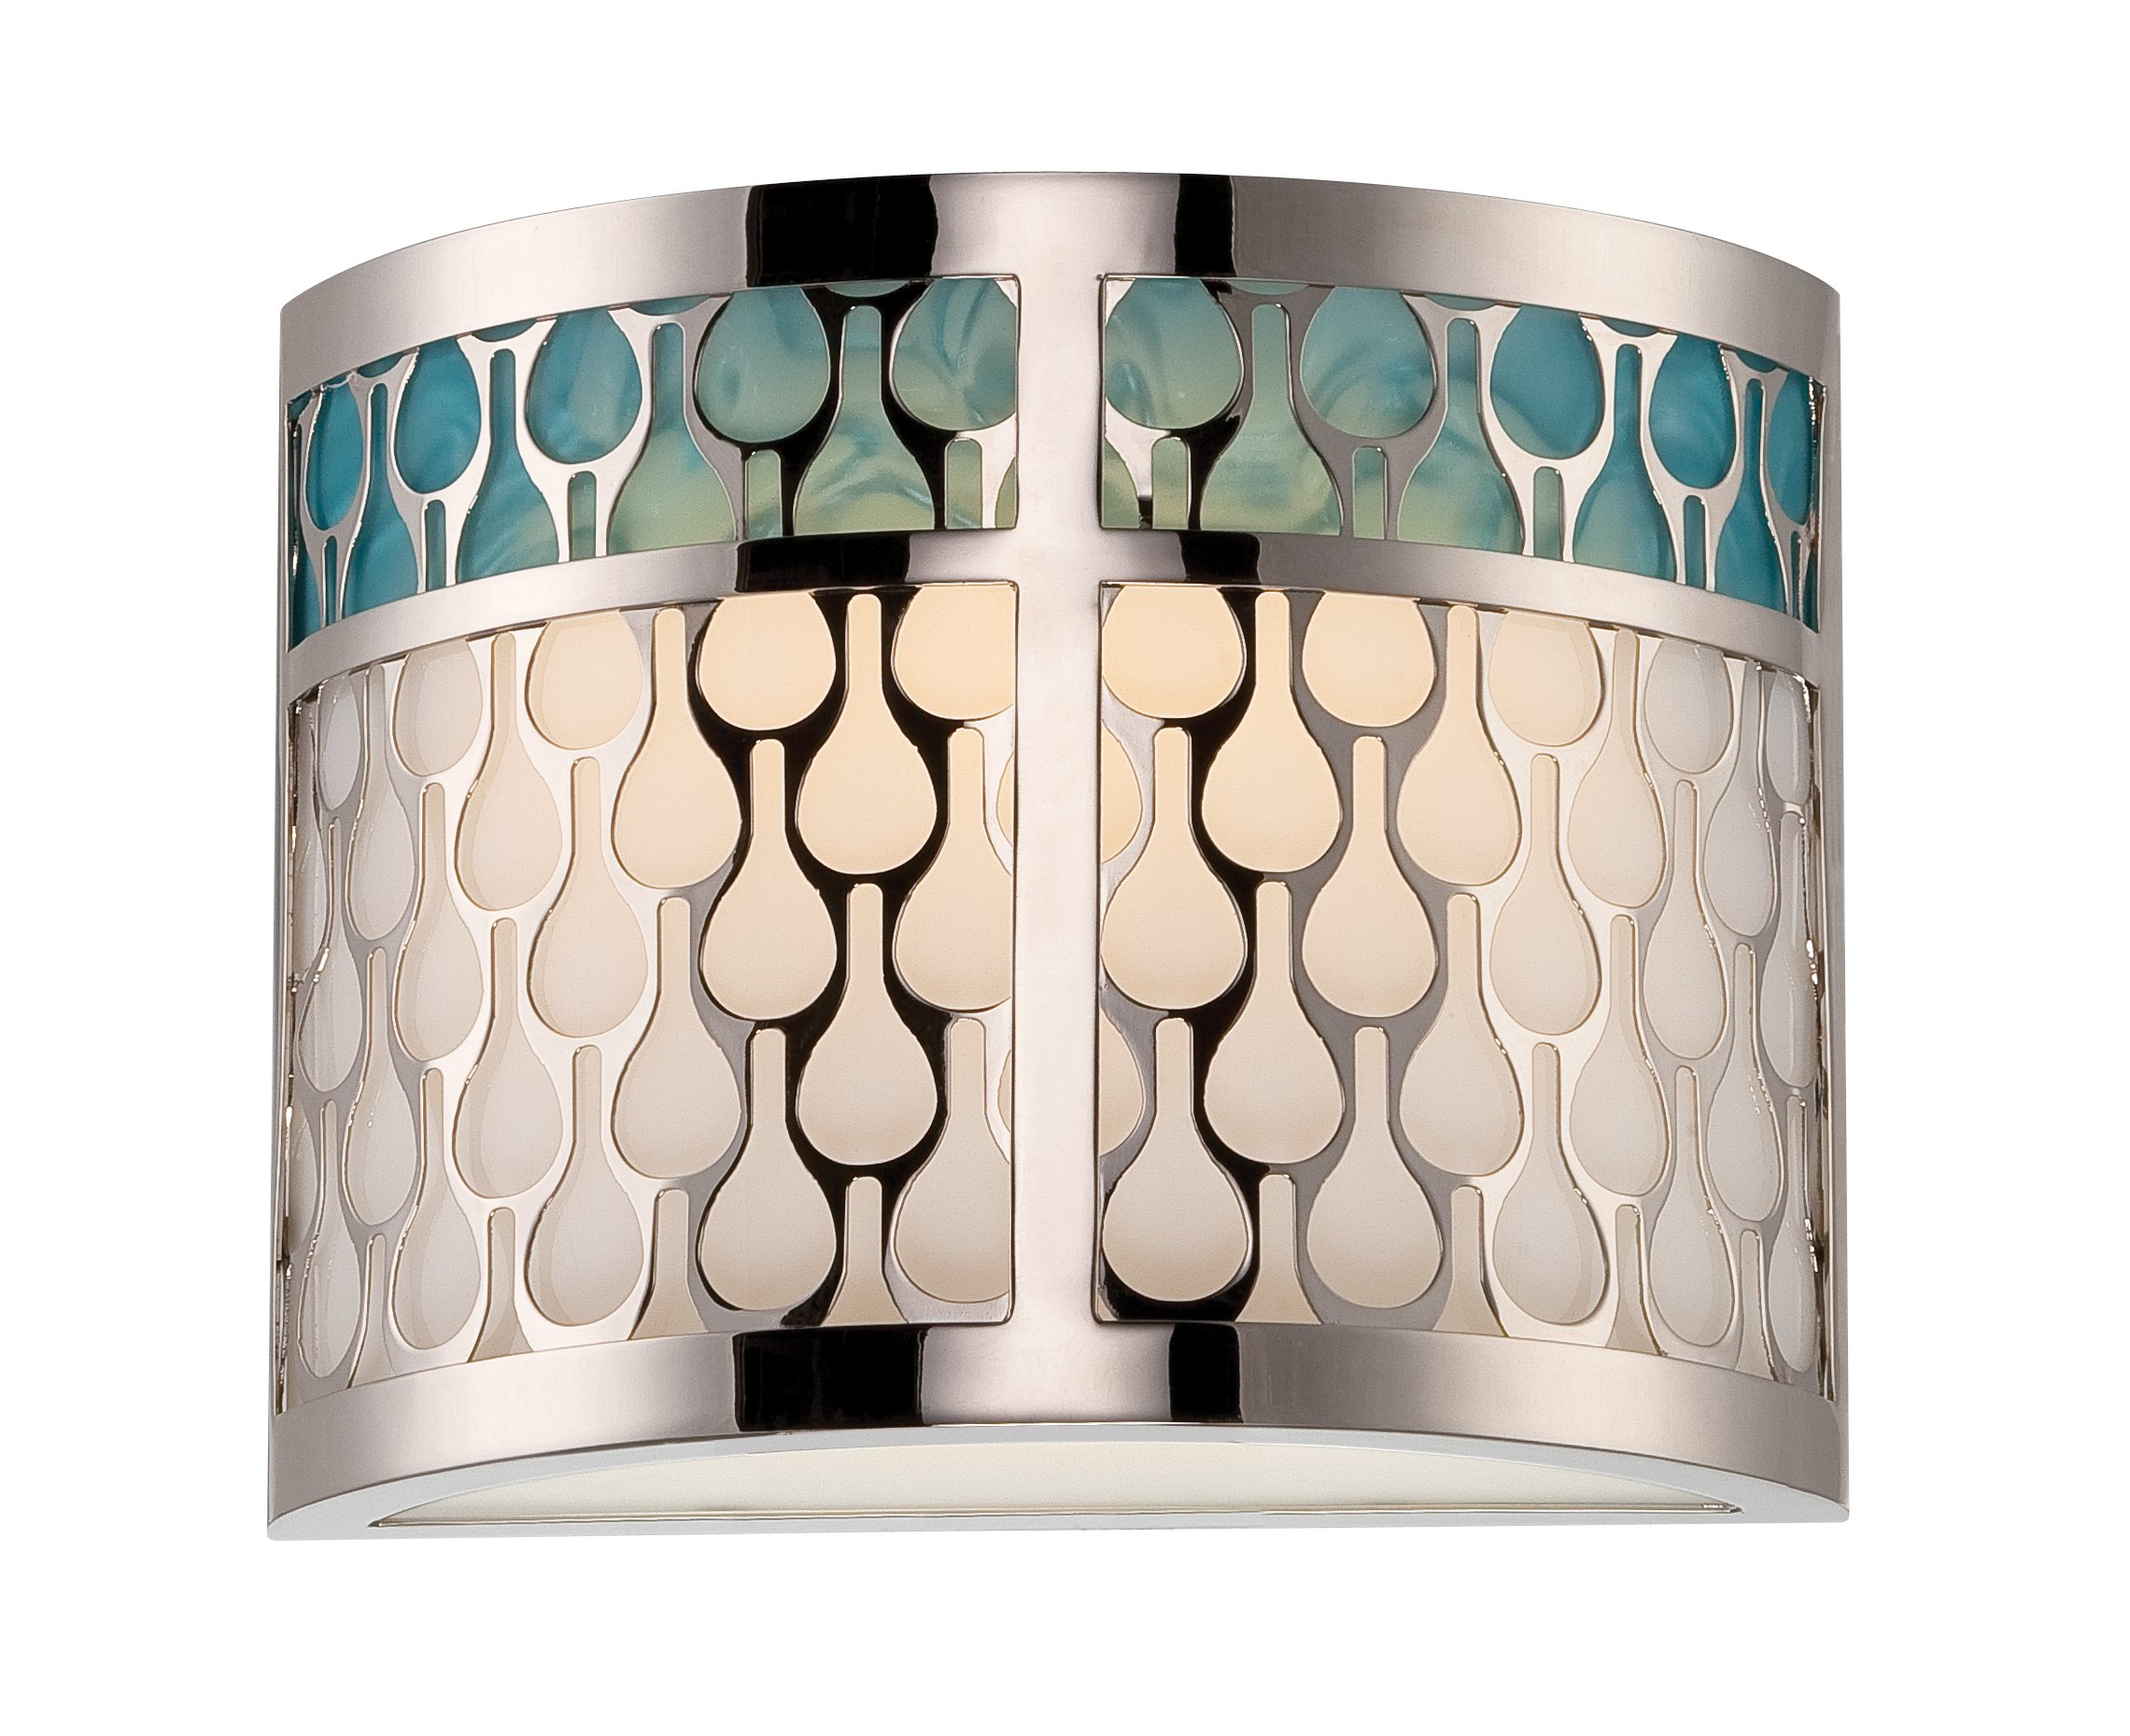 Nuvo Lighting 62/143 Raindrop LED One Light Wall Sconce 4.8 Watt 285 Lumens Soft White 2700K KolourOne Technology Polished Nickel Fixture